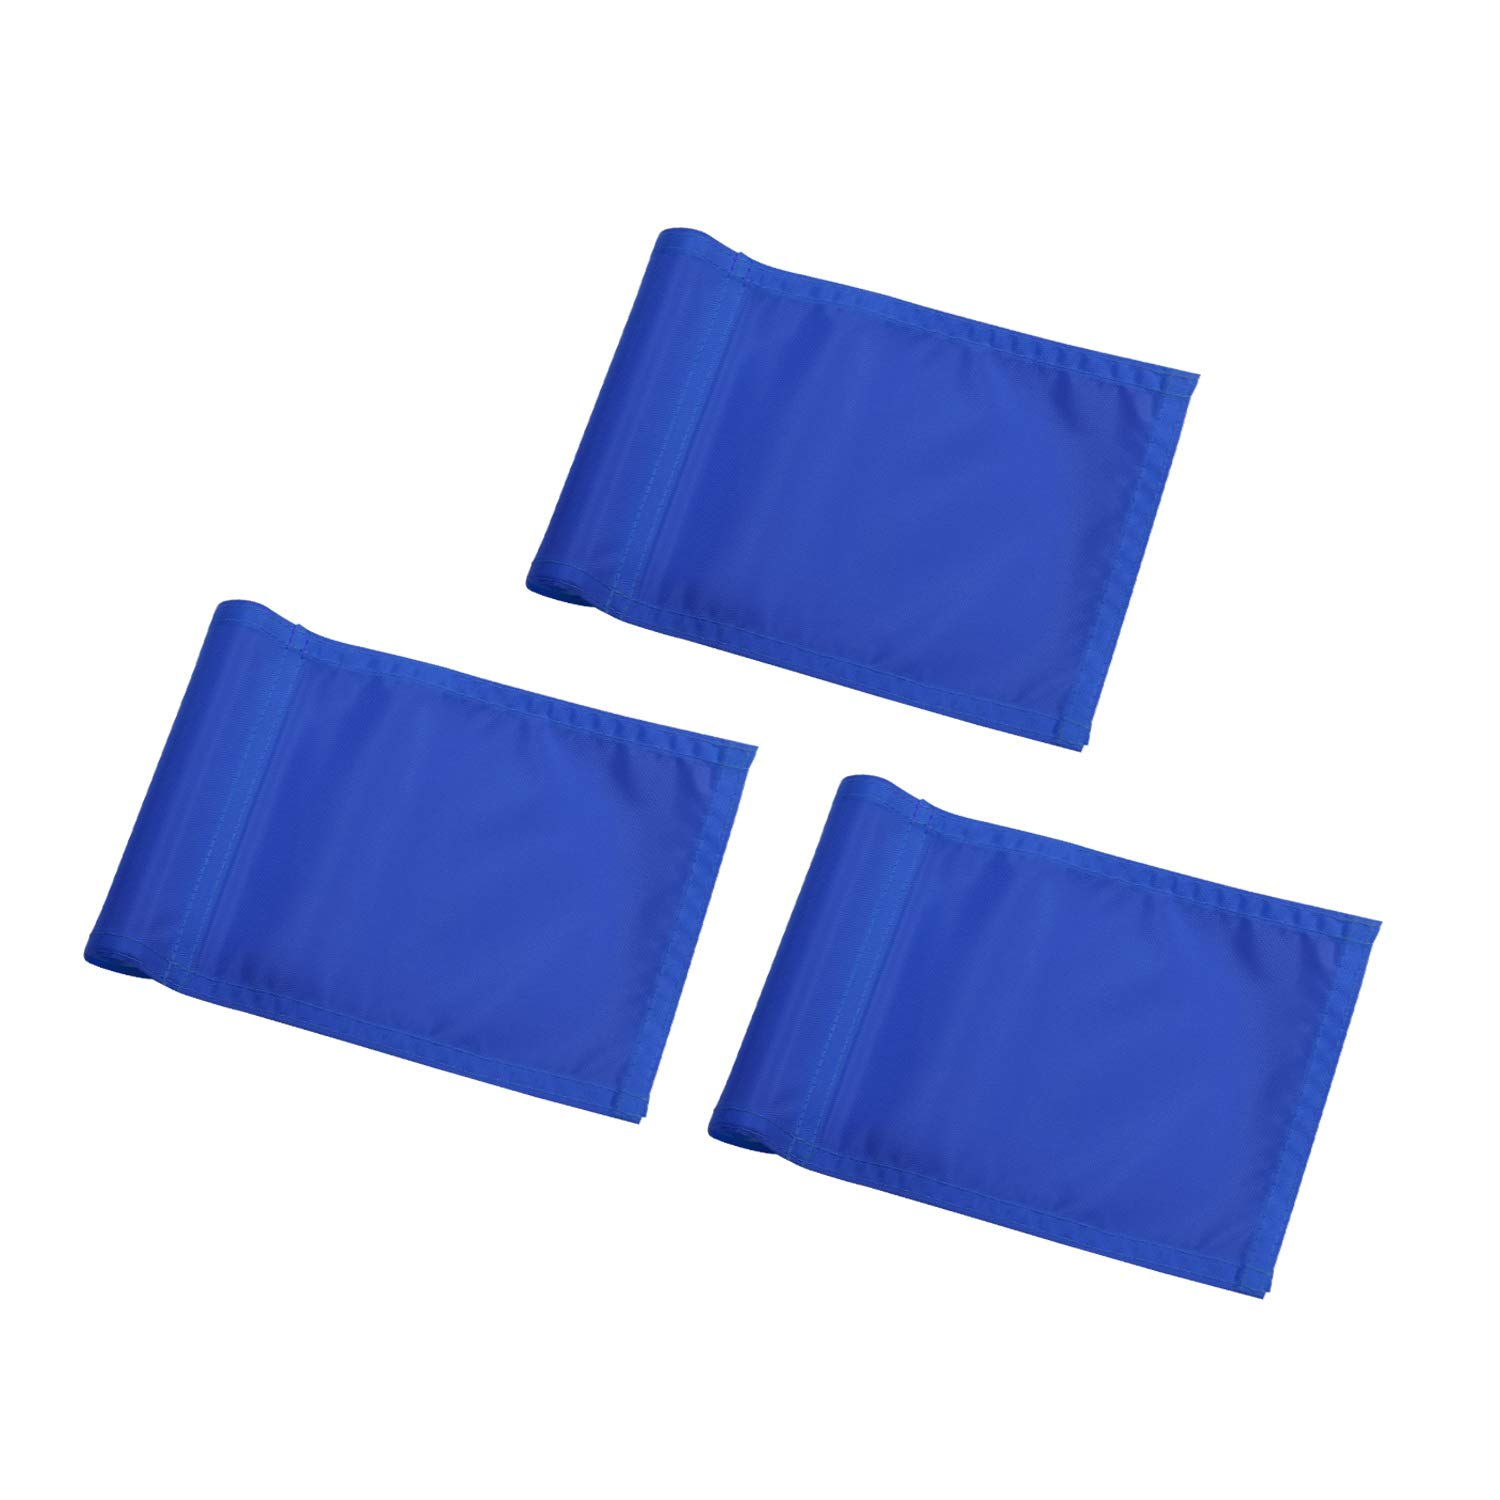 KINGTOP Solid Golf Flag with Plastic Insert, Putting Green Flags for Yard, Indoor/Outdoor, Garden Pin Flags, 420D Premium Nylon Flag, 8'' L x 6'' H, Blue, 3-Pack by KINGTOP